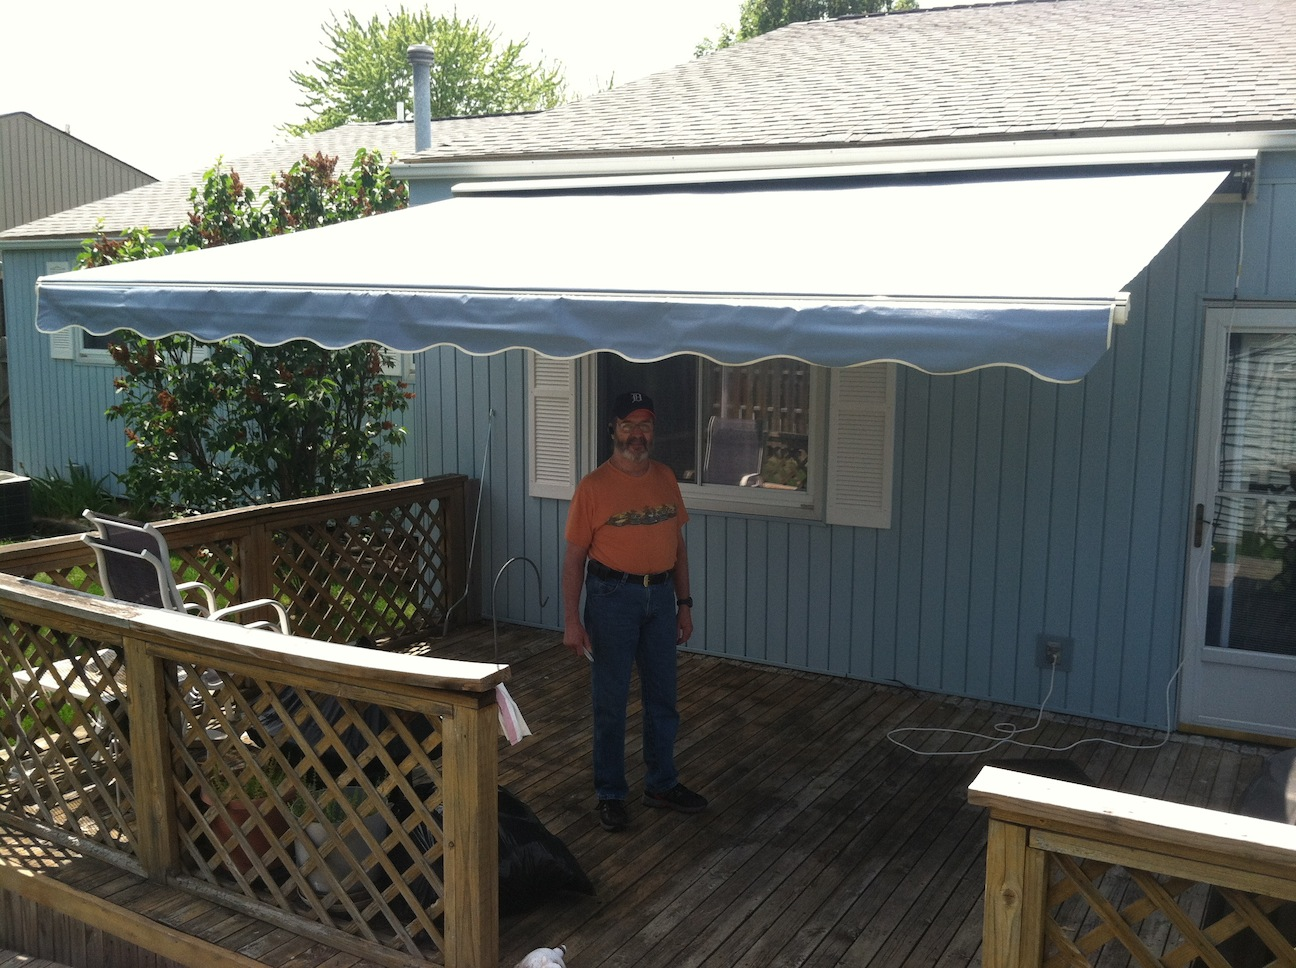 A SunSetter Awning Lets You Outsmart The Weather Save Energy And Cut Costs It Transforms Your Deck Or Patio Into Beautiful Semi Permanent